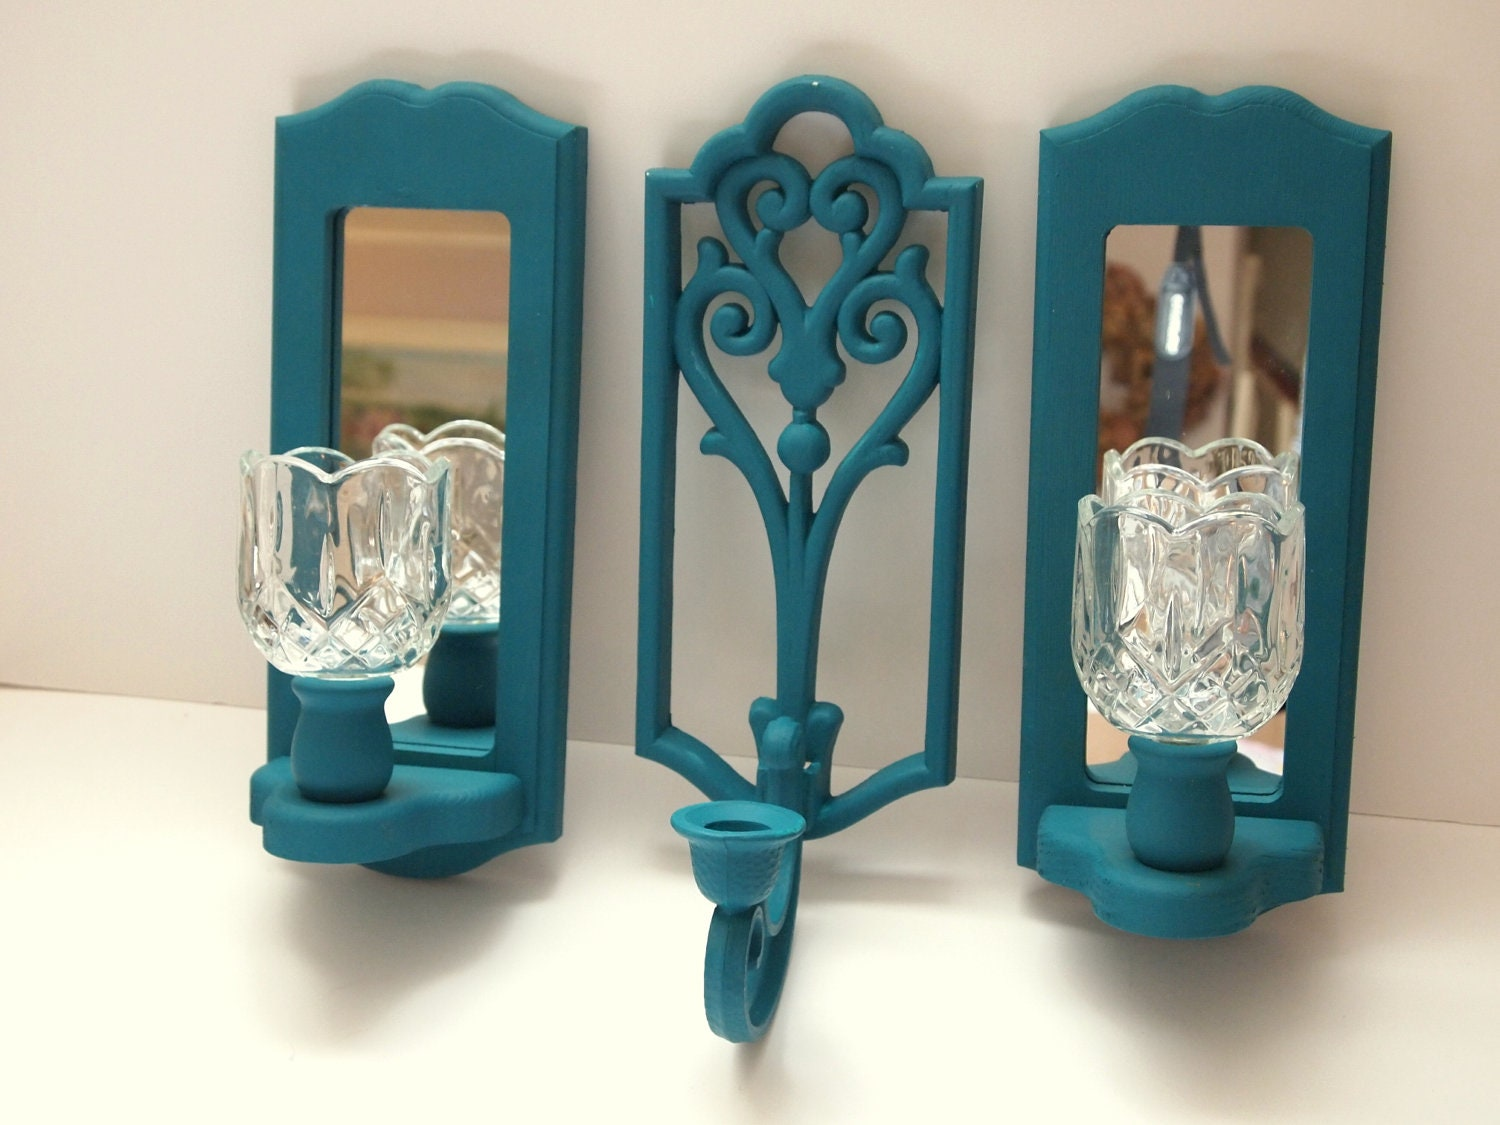 Mirror Wall Teal Candle Sconce Set Of Three Vintage Cottage